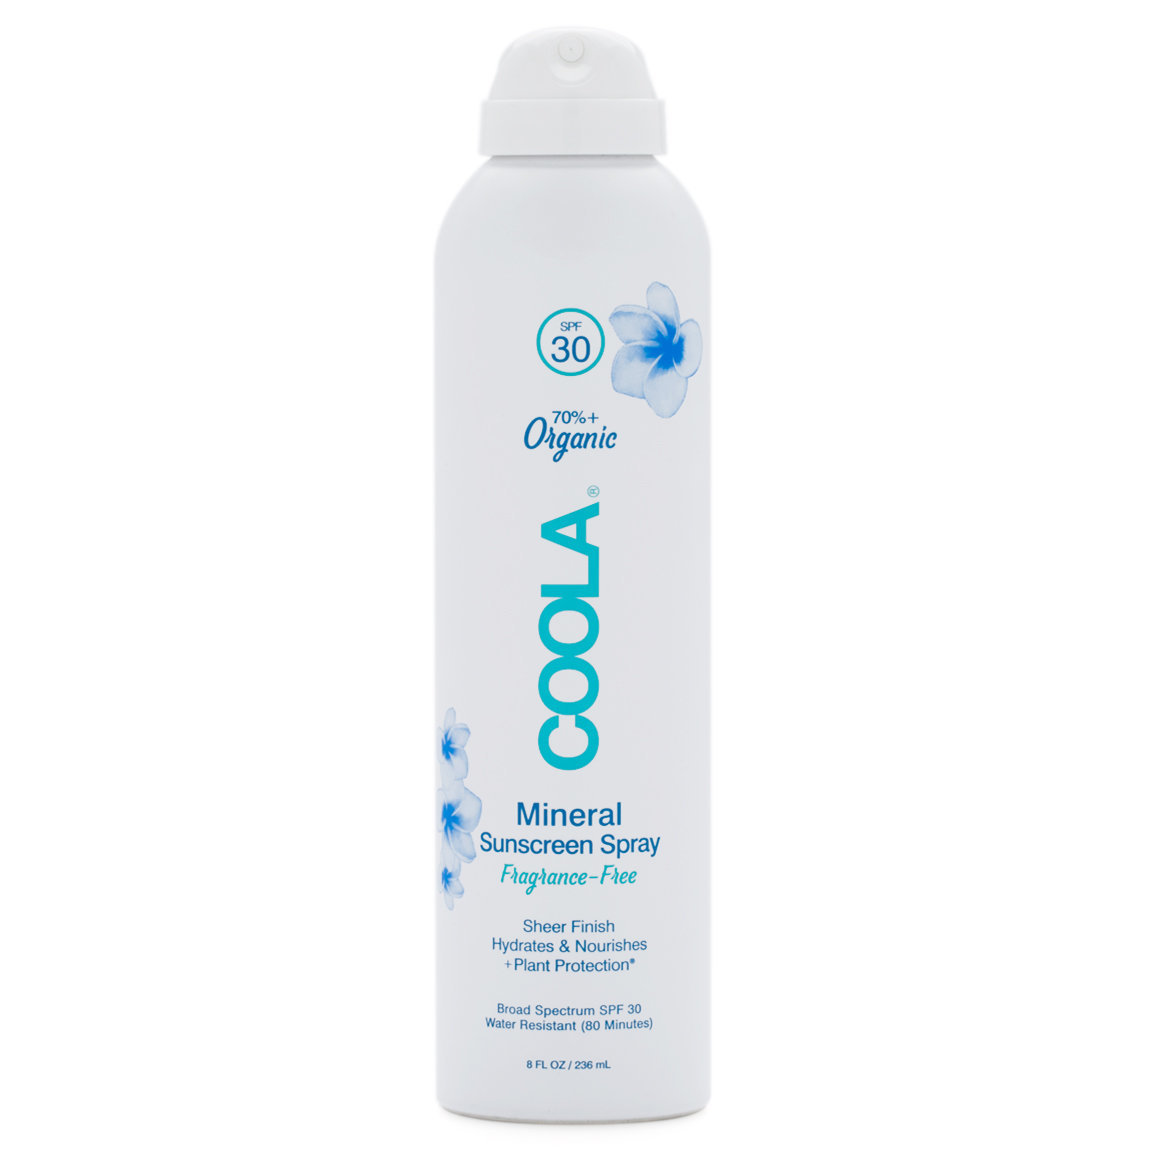 COOLA Mineral Body Sunscreen Spray SPF 30 product swatch.